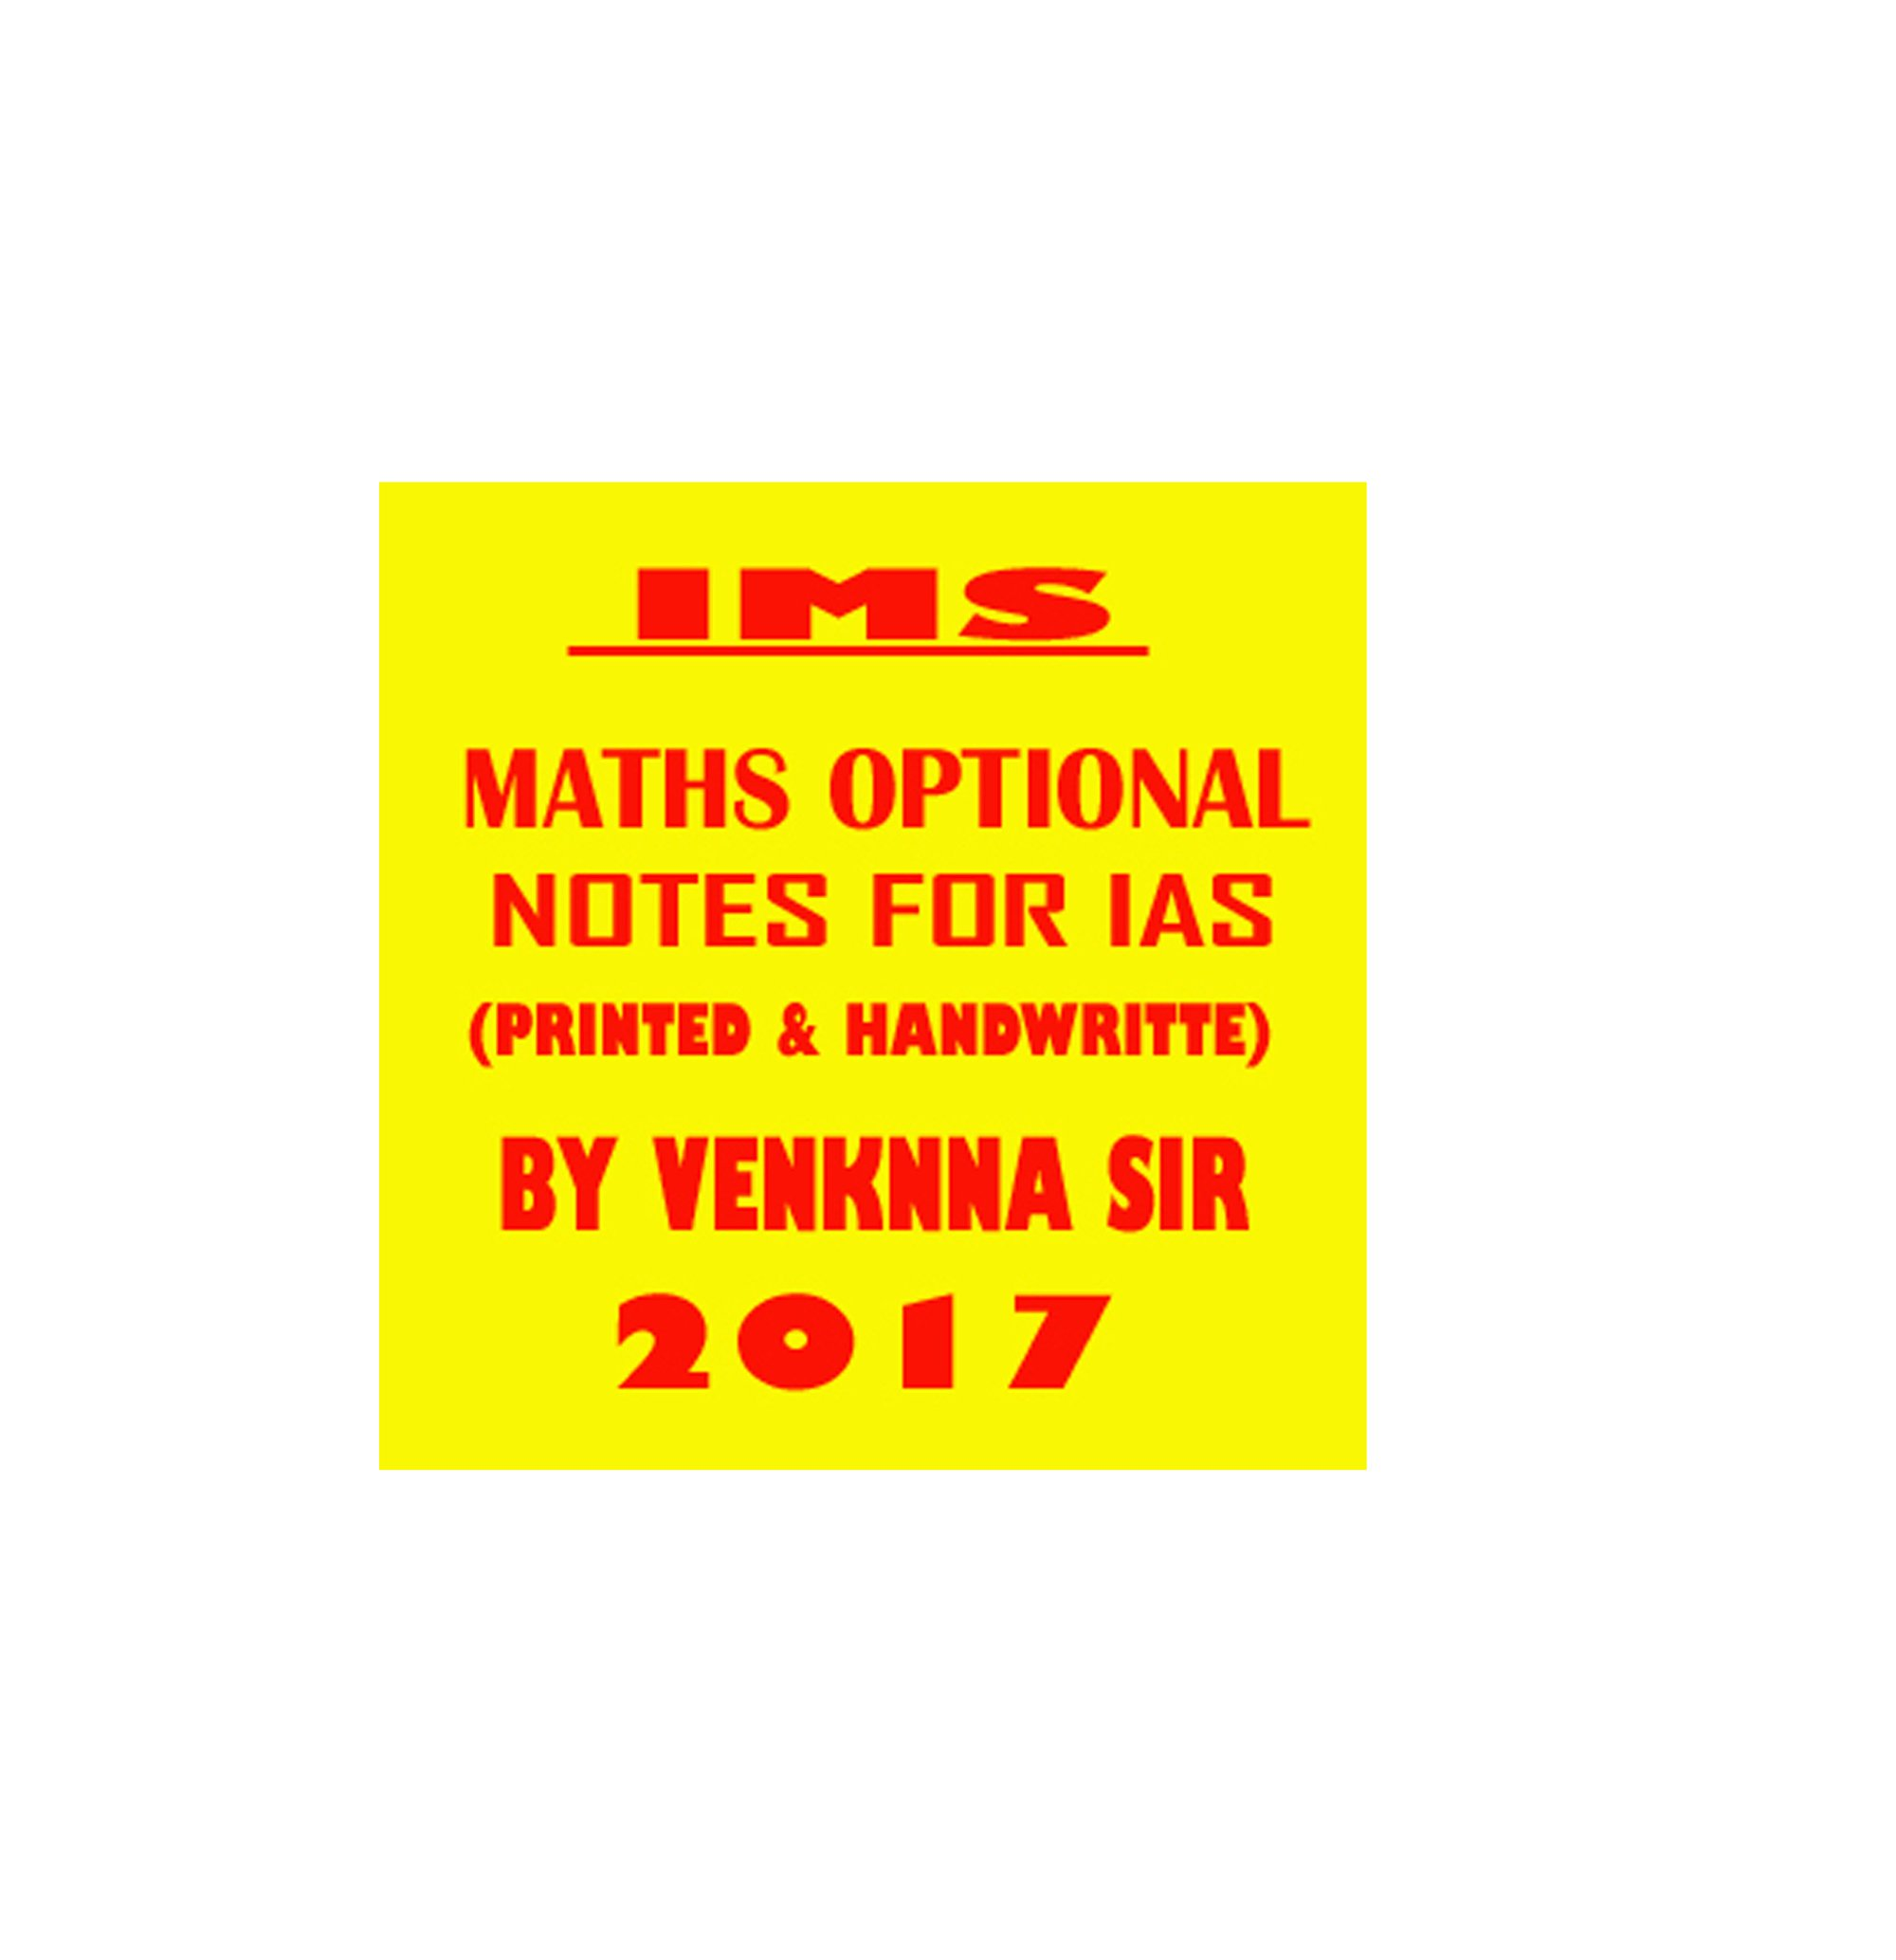 Buy IMS Maths optional notes for IAS printed notes by Venknna sir